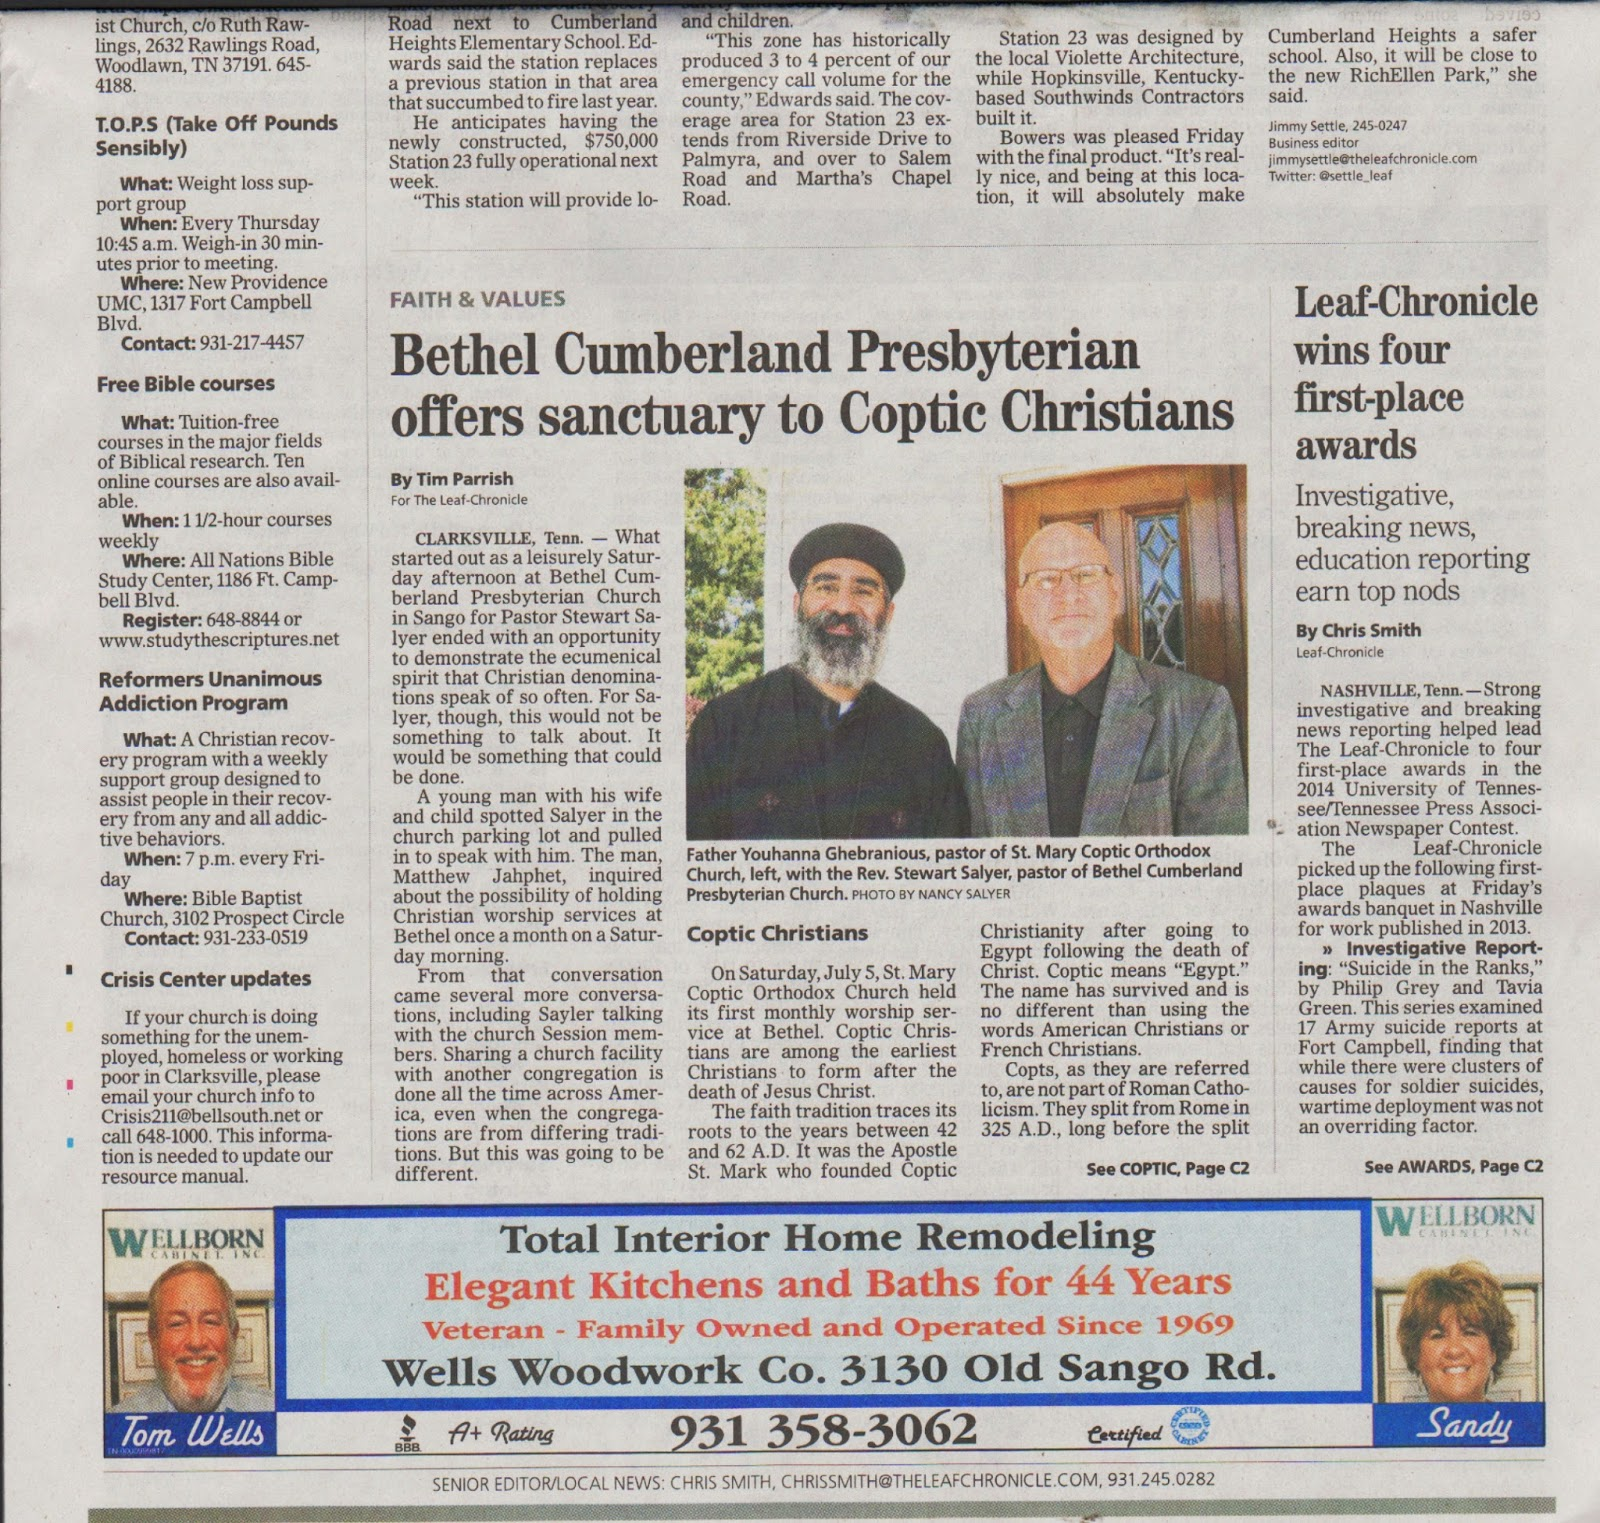 Smiling Lungs: Copts in Clarksville